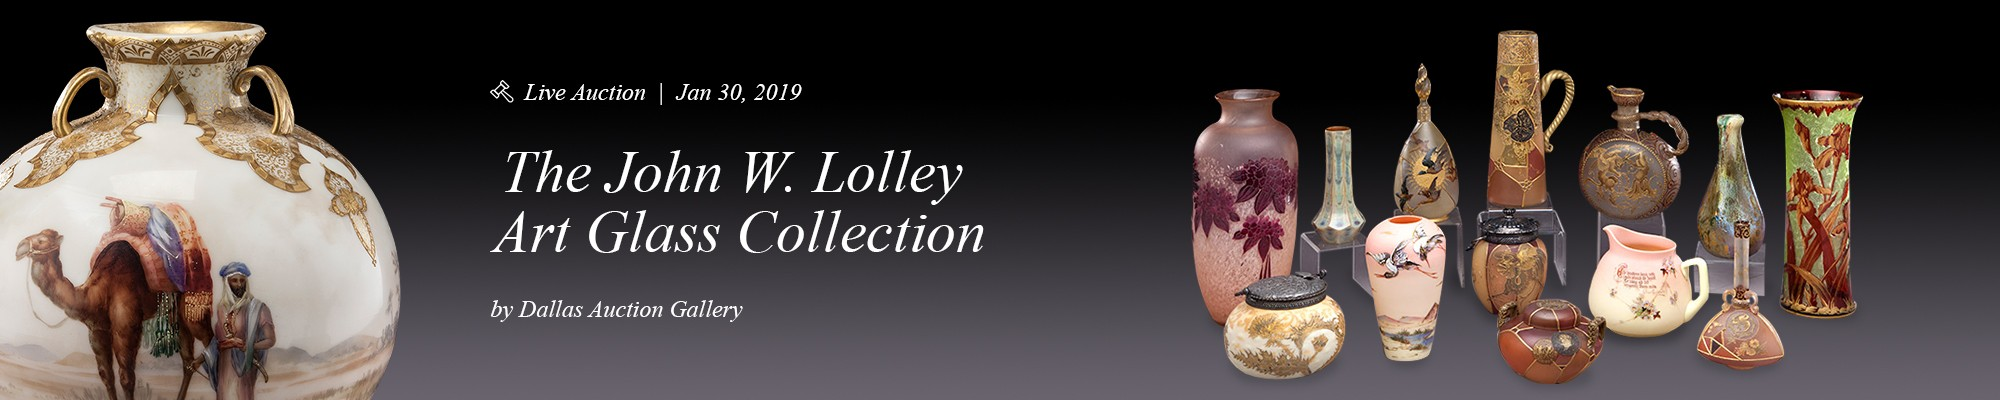 the-john-w-lolley-art-glass-collection-dallas-auction-gallery